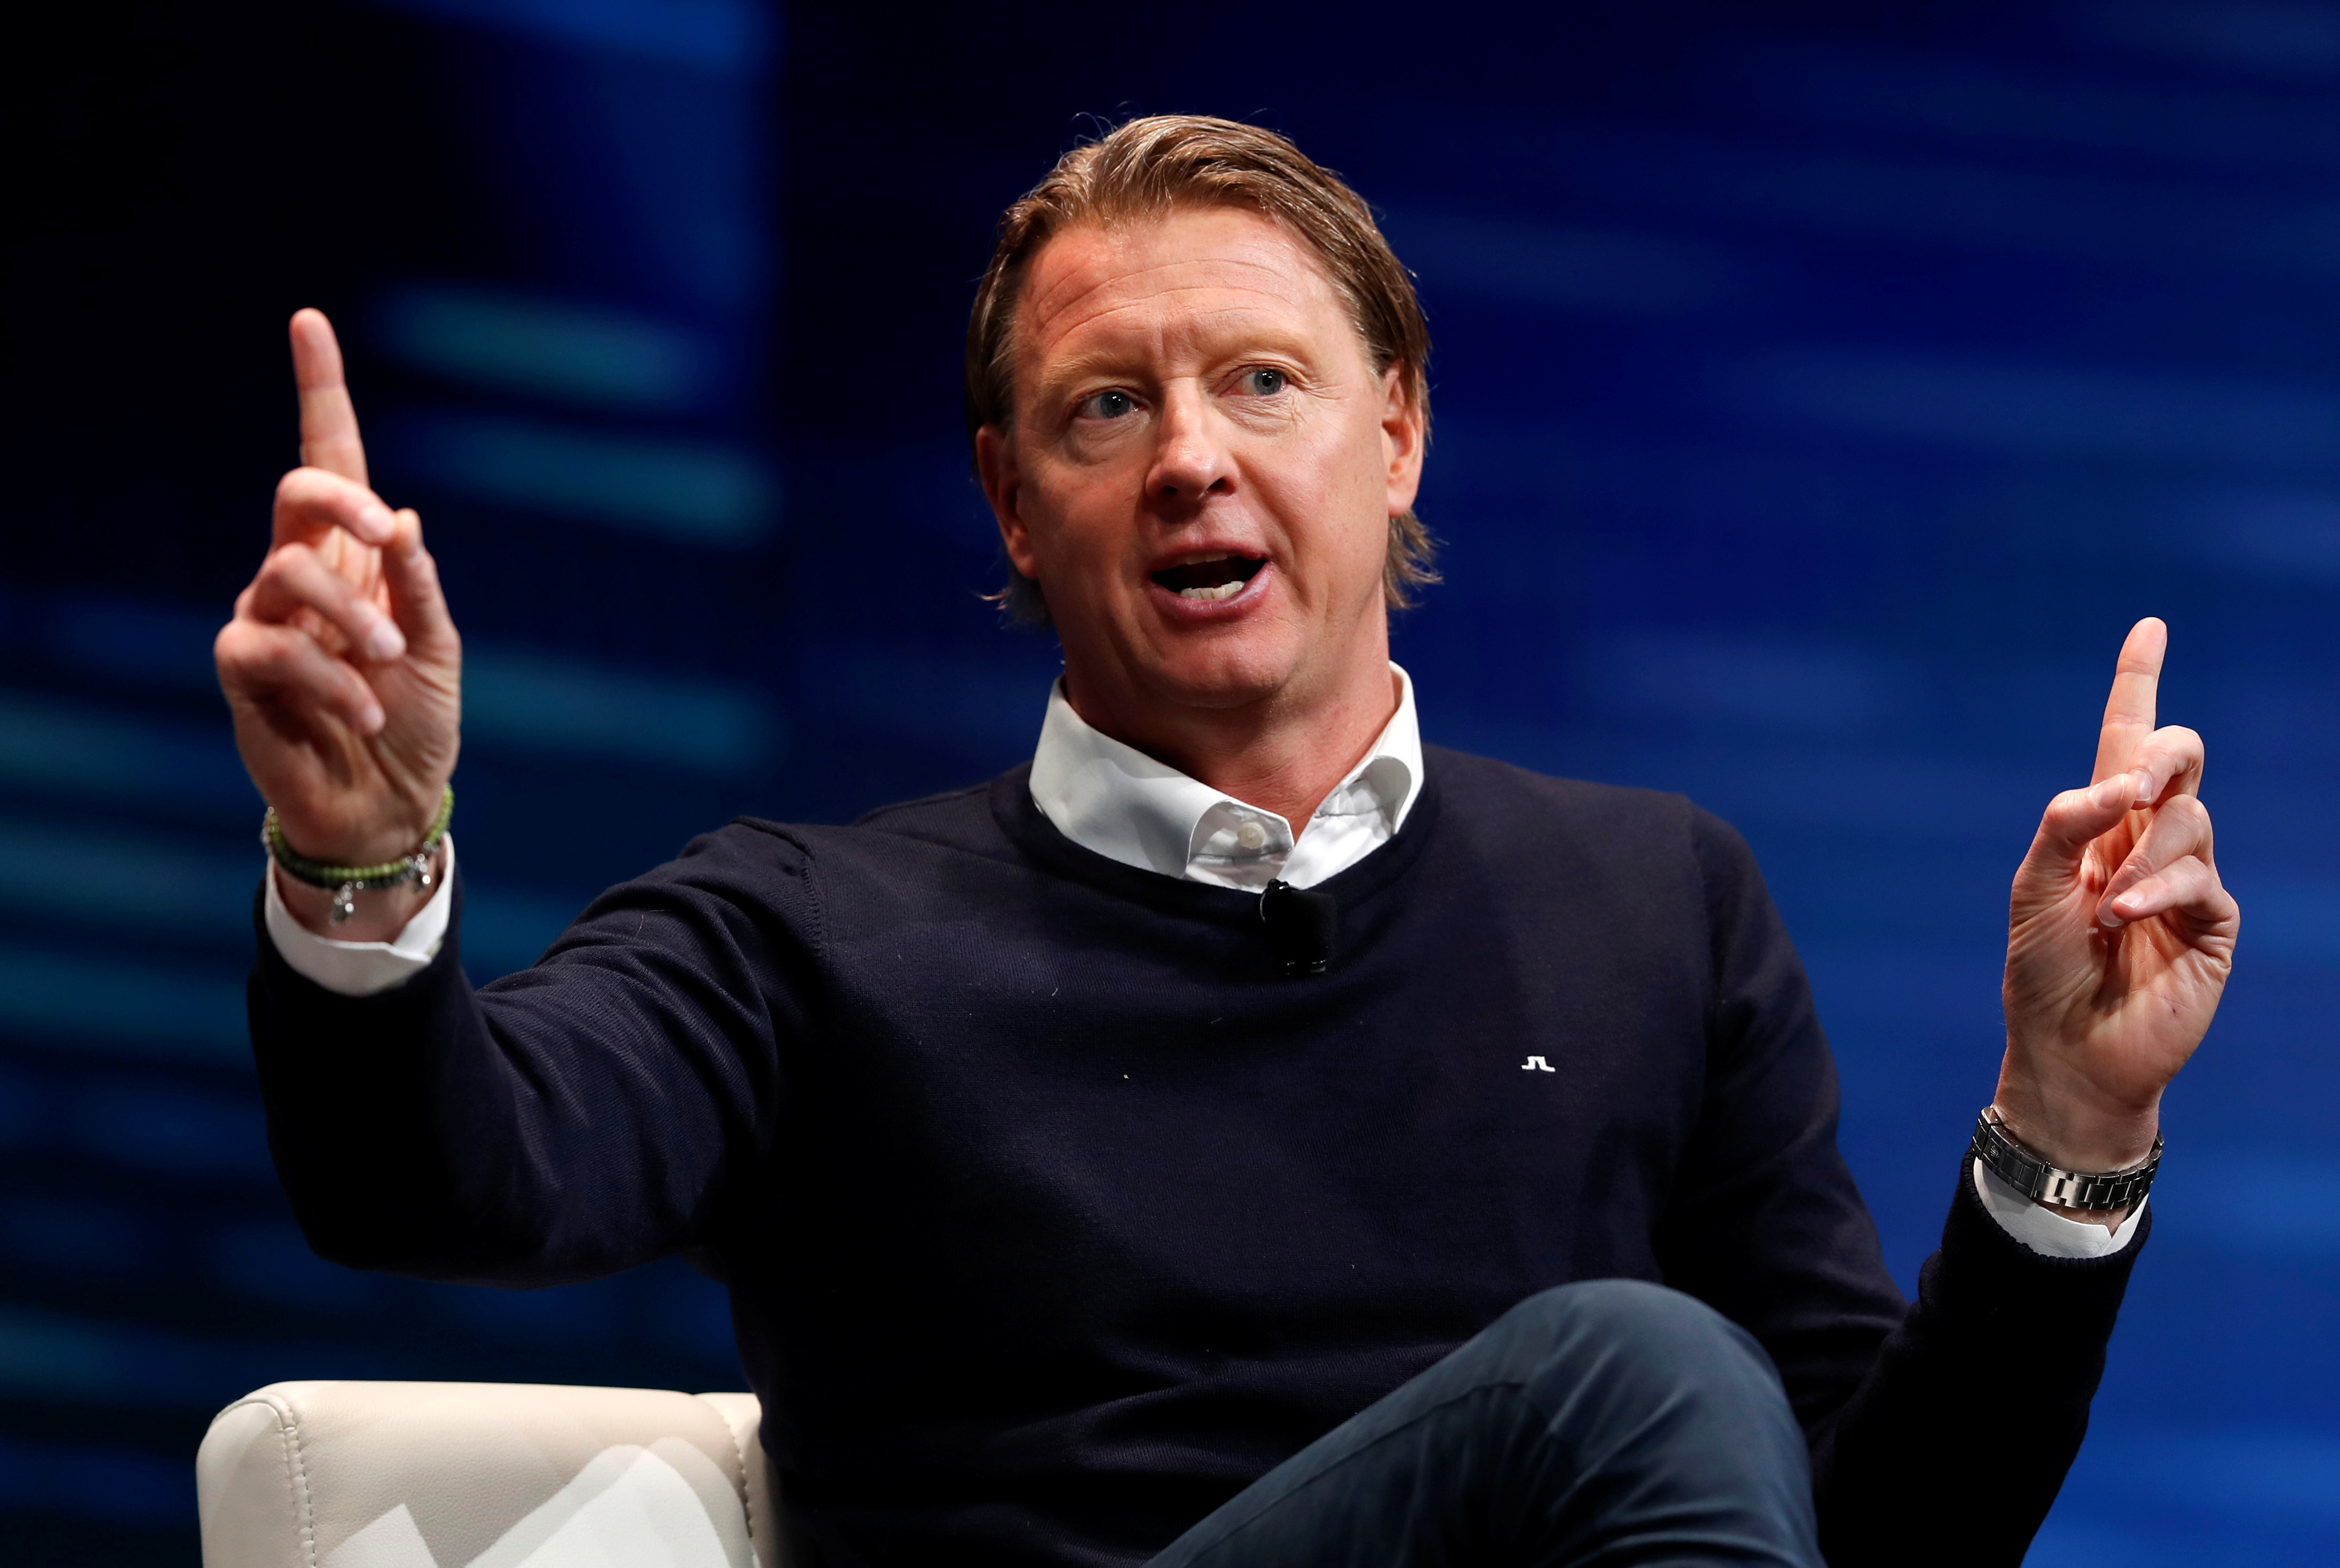 Hans Vestberg, Verizon executive vice president and president of Global Networks and Chief Technology Officer, responds to a question during a panel discussion on 5G wireless broadband technology during the 2018 CES in Las Vegas, Nevada, U.S. January 10, 2018. REUTERS/Steve Marcus - RC19EF82F050